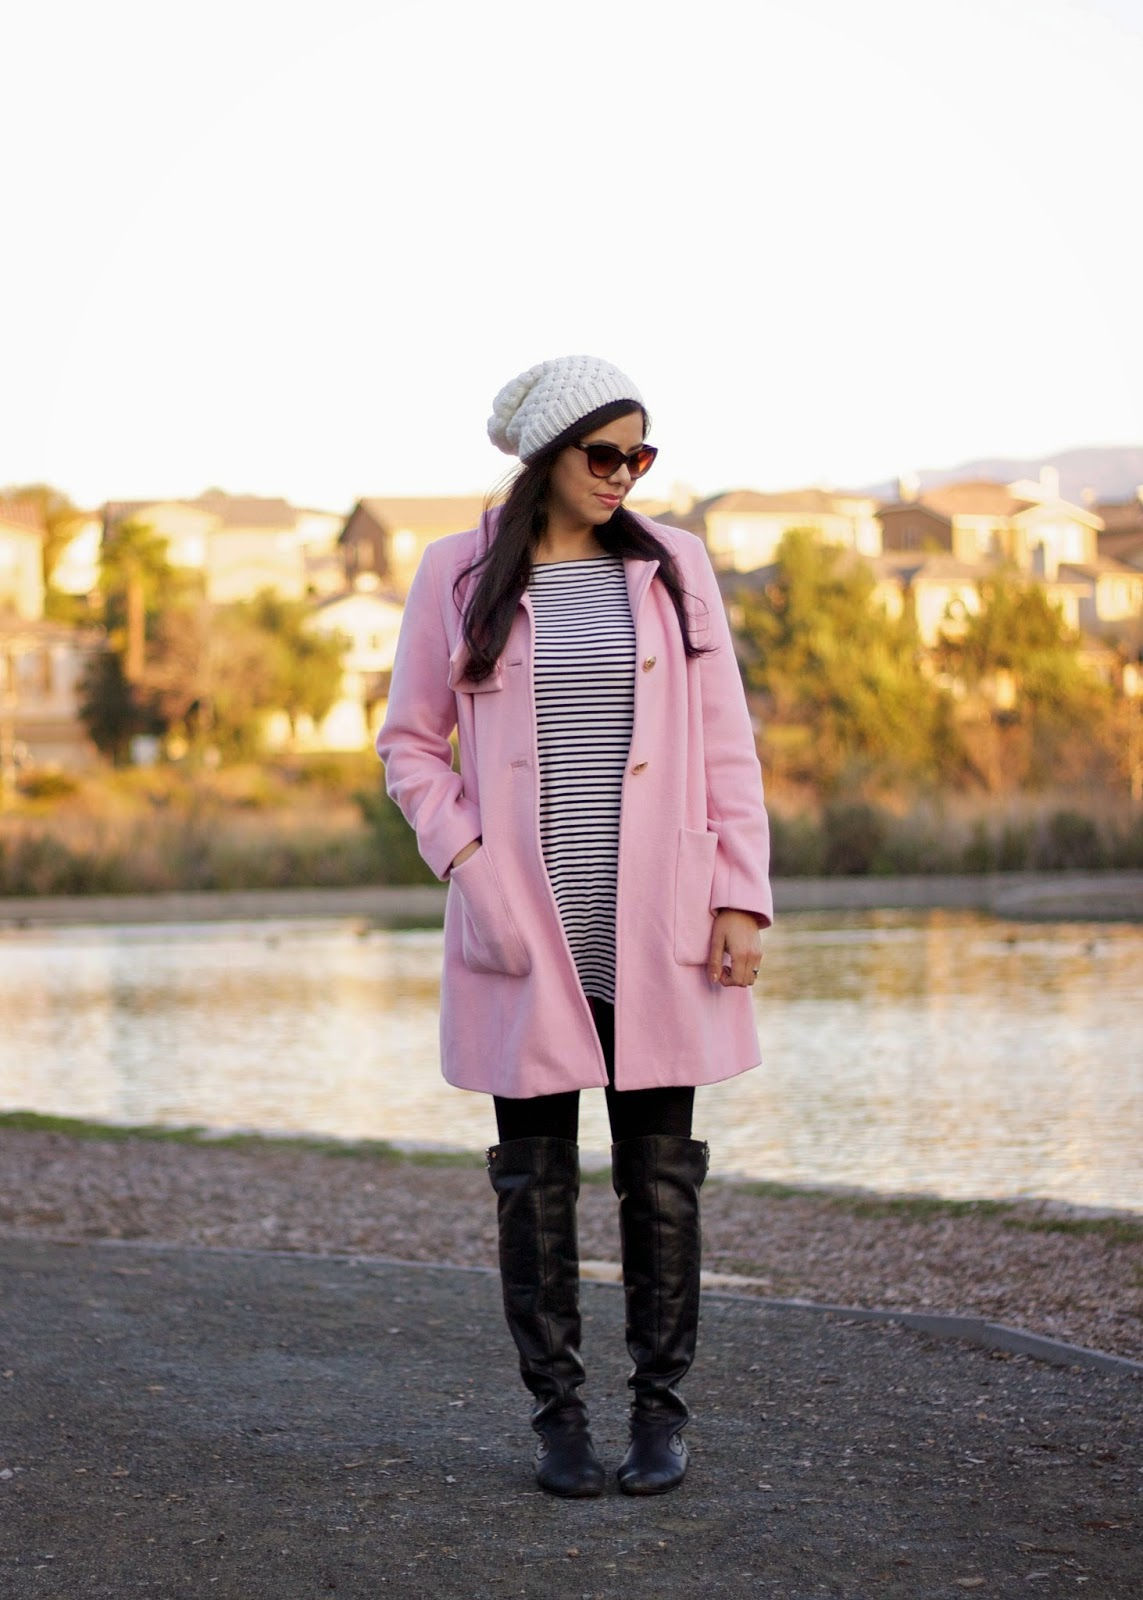 Pink and stripes, san diego fashion blogger, san diego style bloggers, san diego fashion, san diego winter fashion 2015, san diego winter fashion, san diego fall fashion, best of san diego bloggers